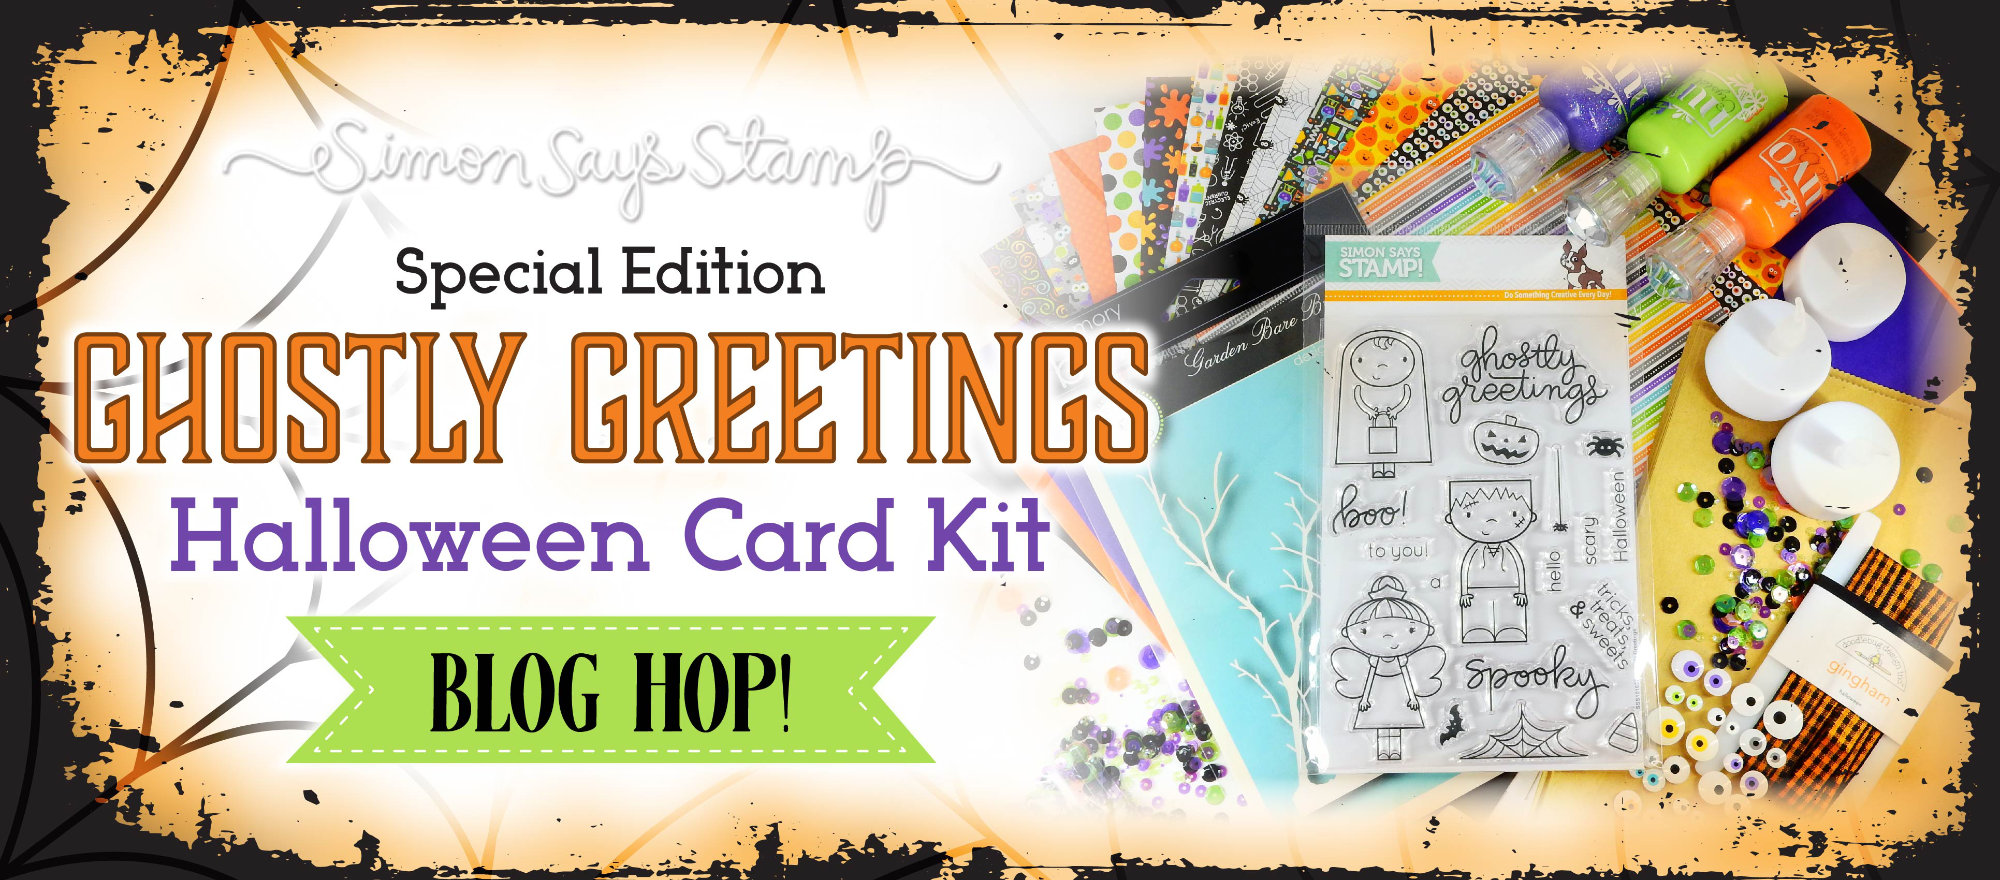 Special Edition Card Kit_blog hop_2